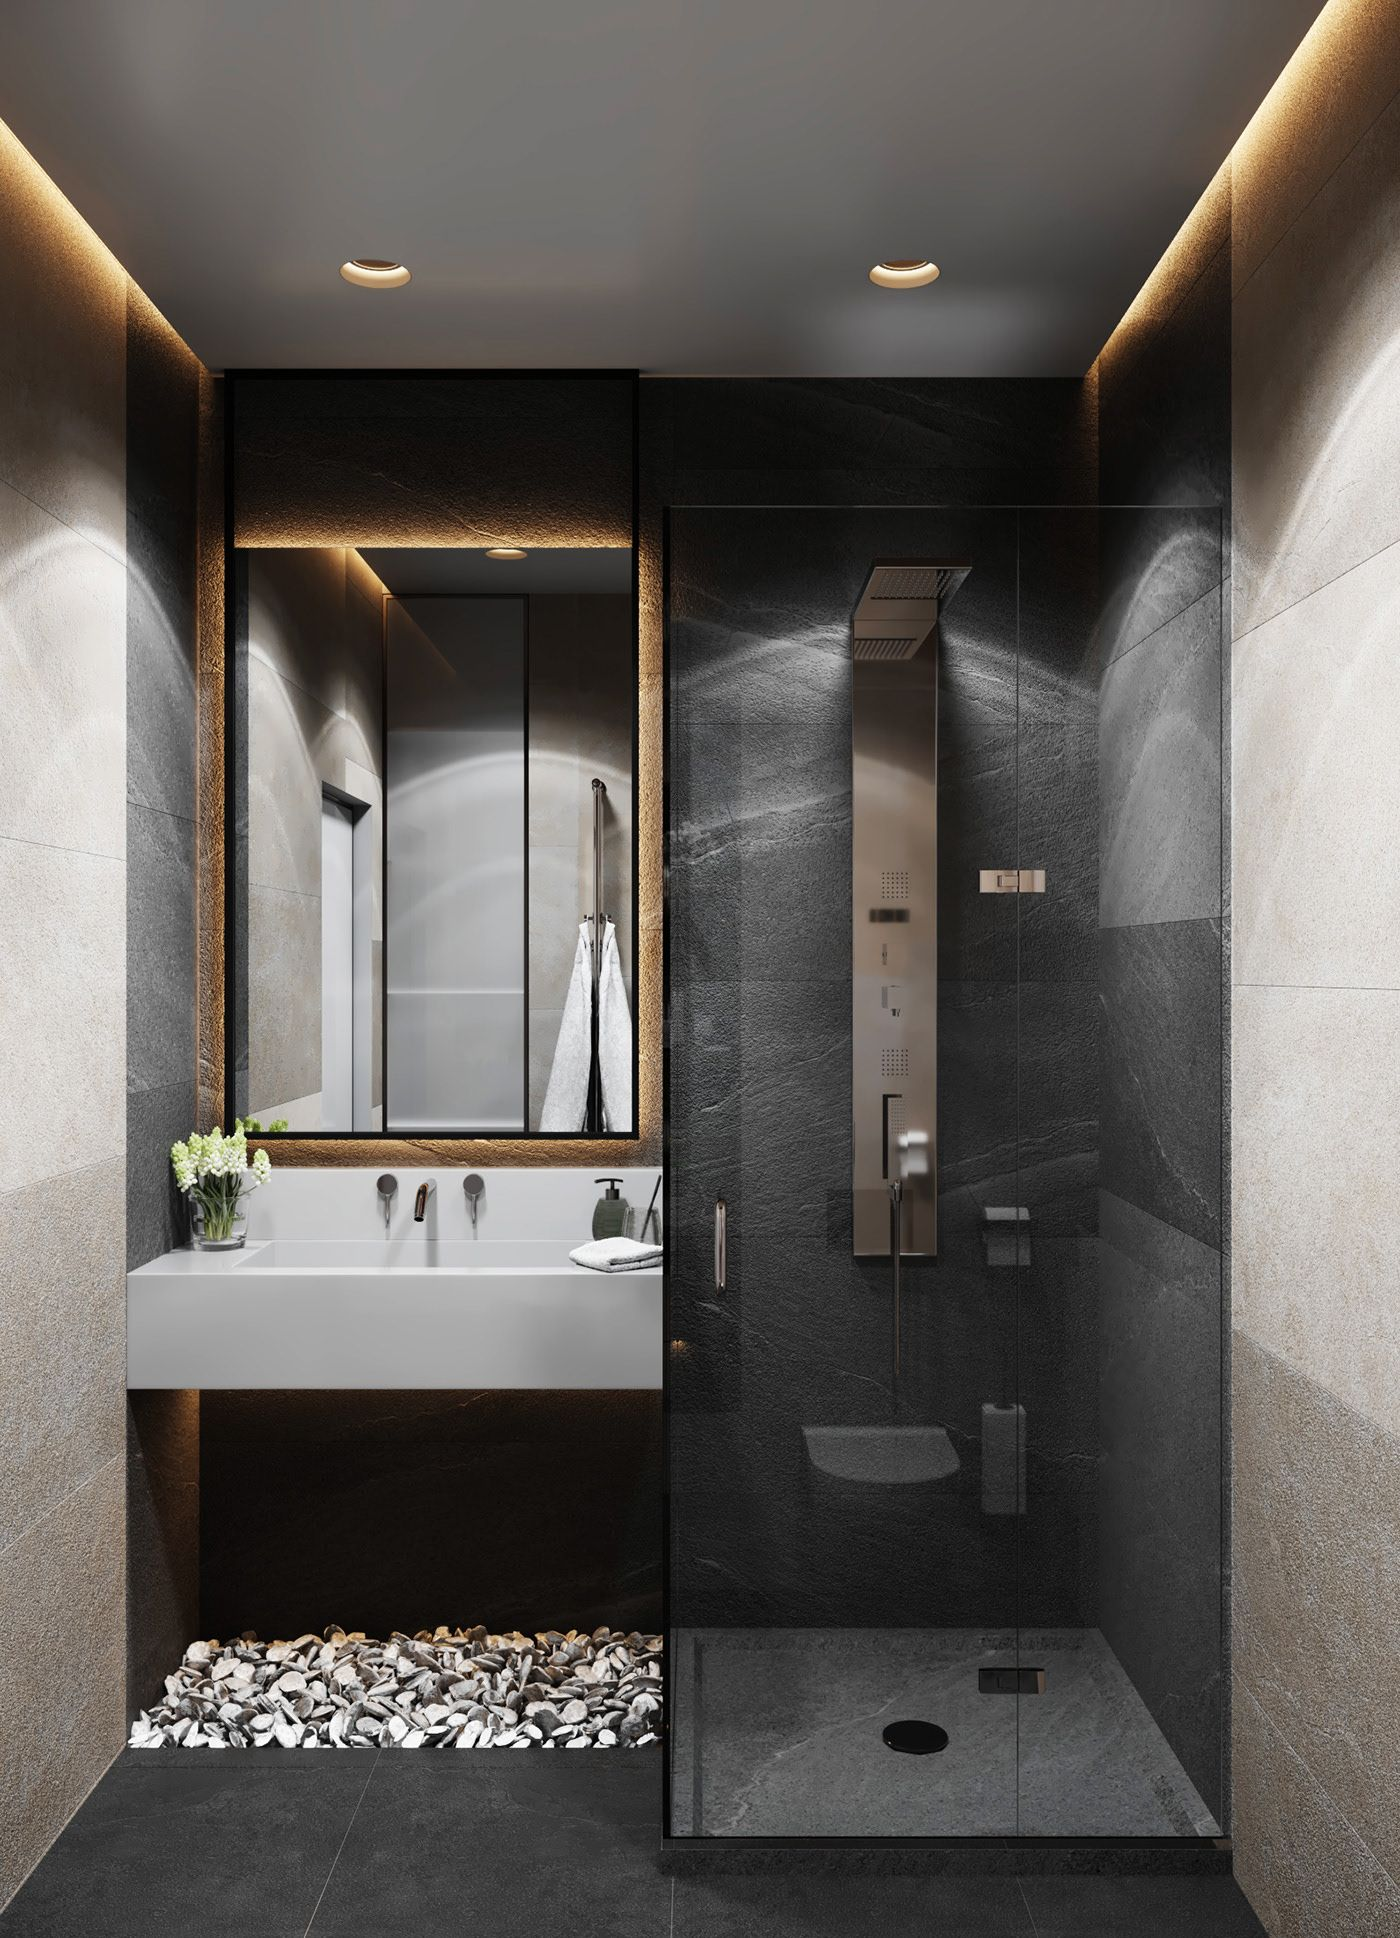 Dubrovka Master Bedroom Master Bathroom On Behance Bathroom Design Luxury Master Bedroom Bathroom Bathroom Design Small